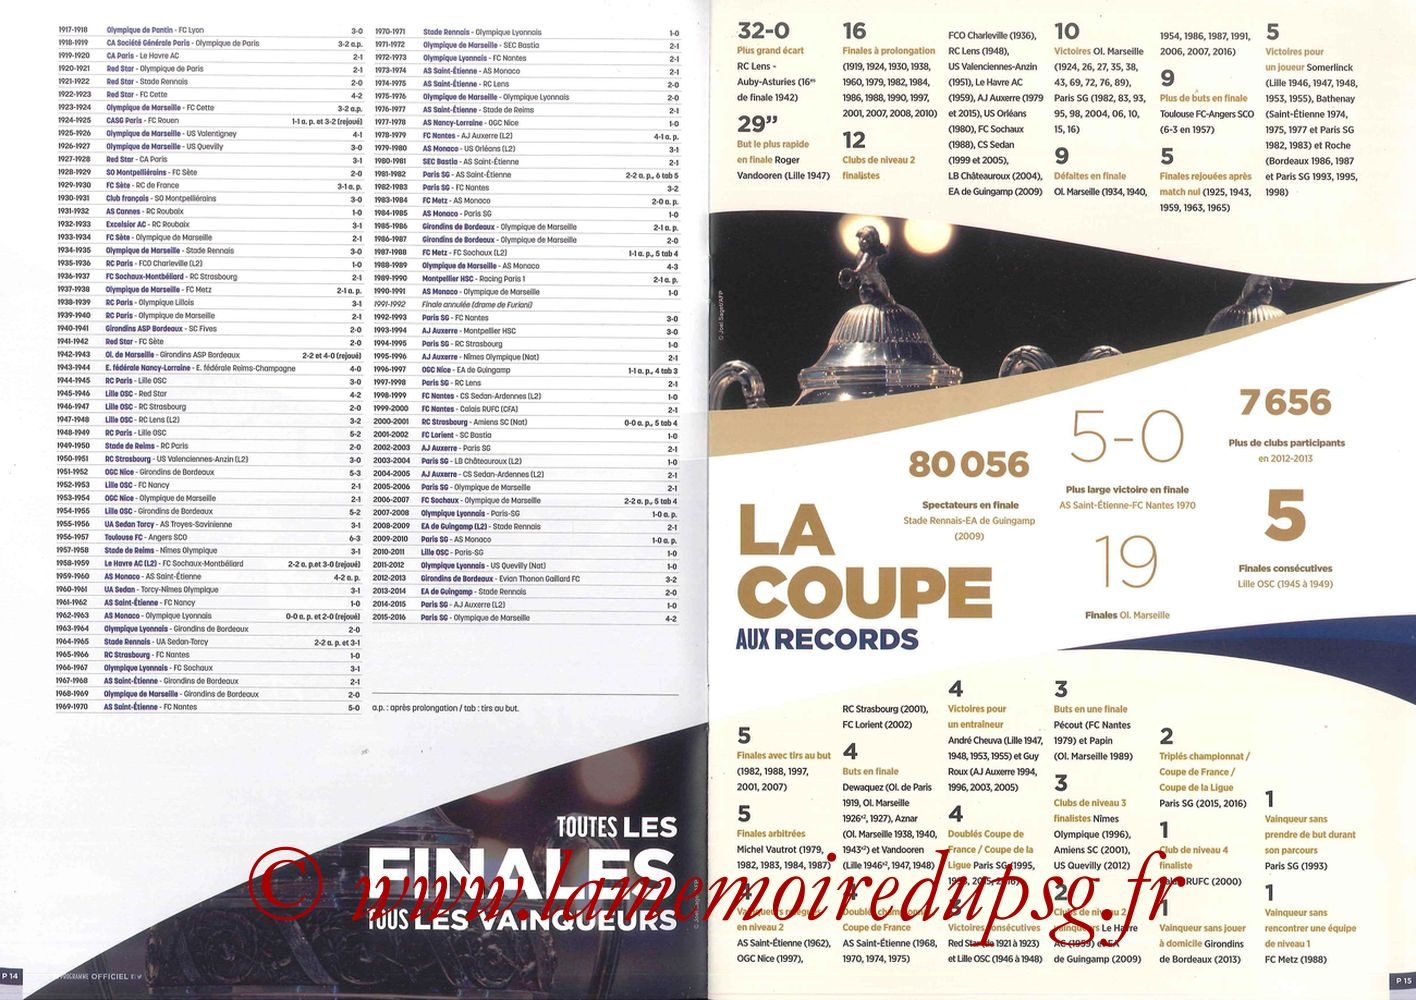 2017-05-27  Angers-PSG (Finale CF à Saint-Denis, Programme officiel) - Pages 14 et 15